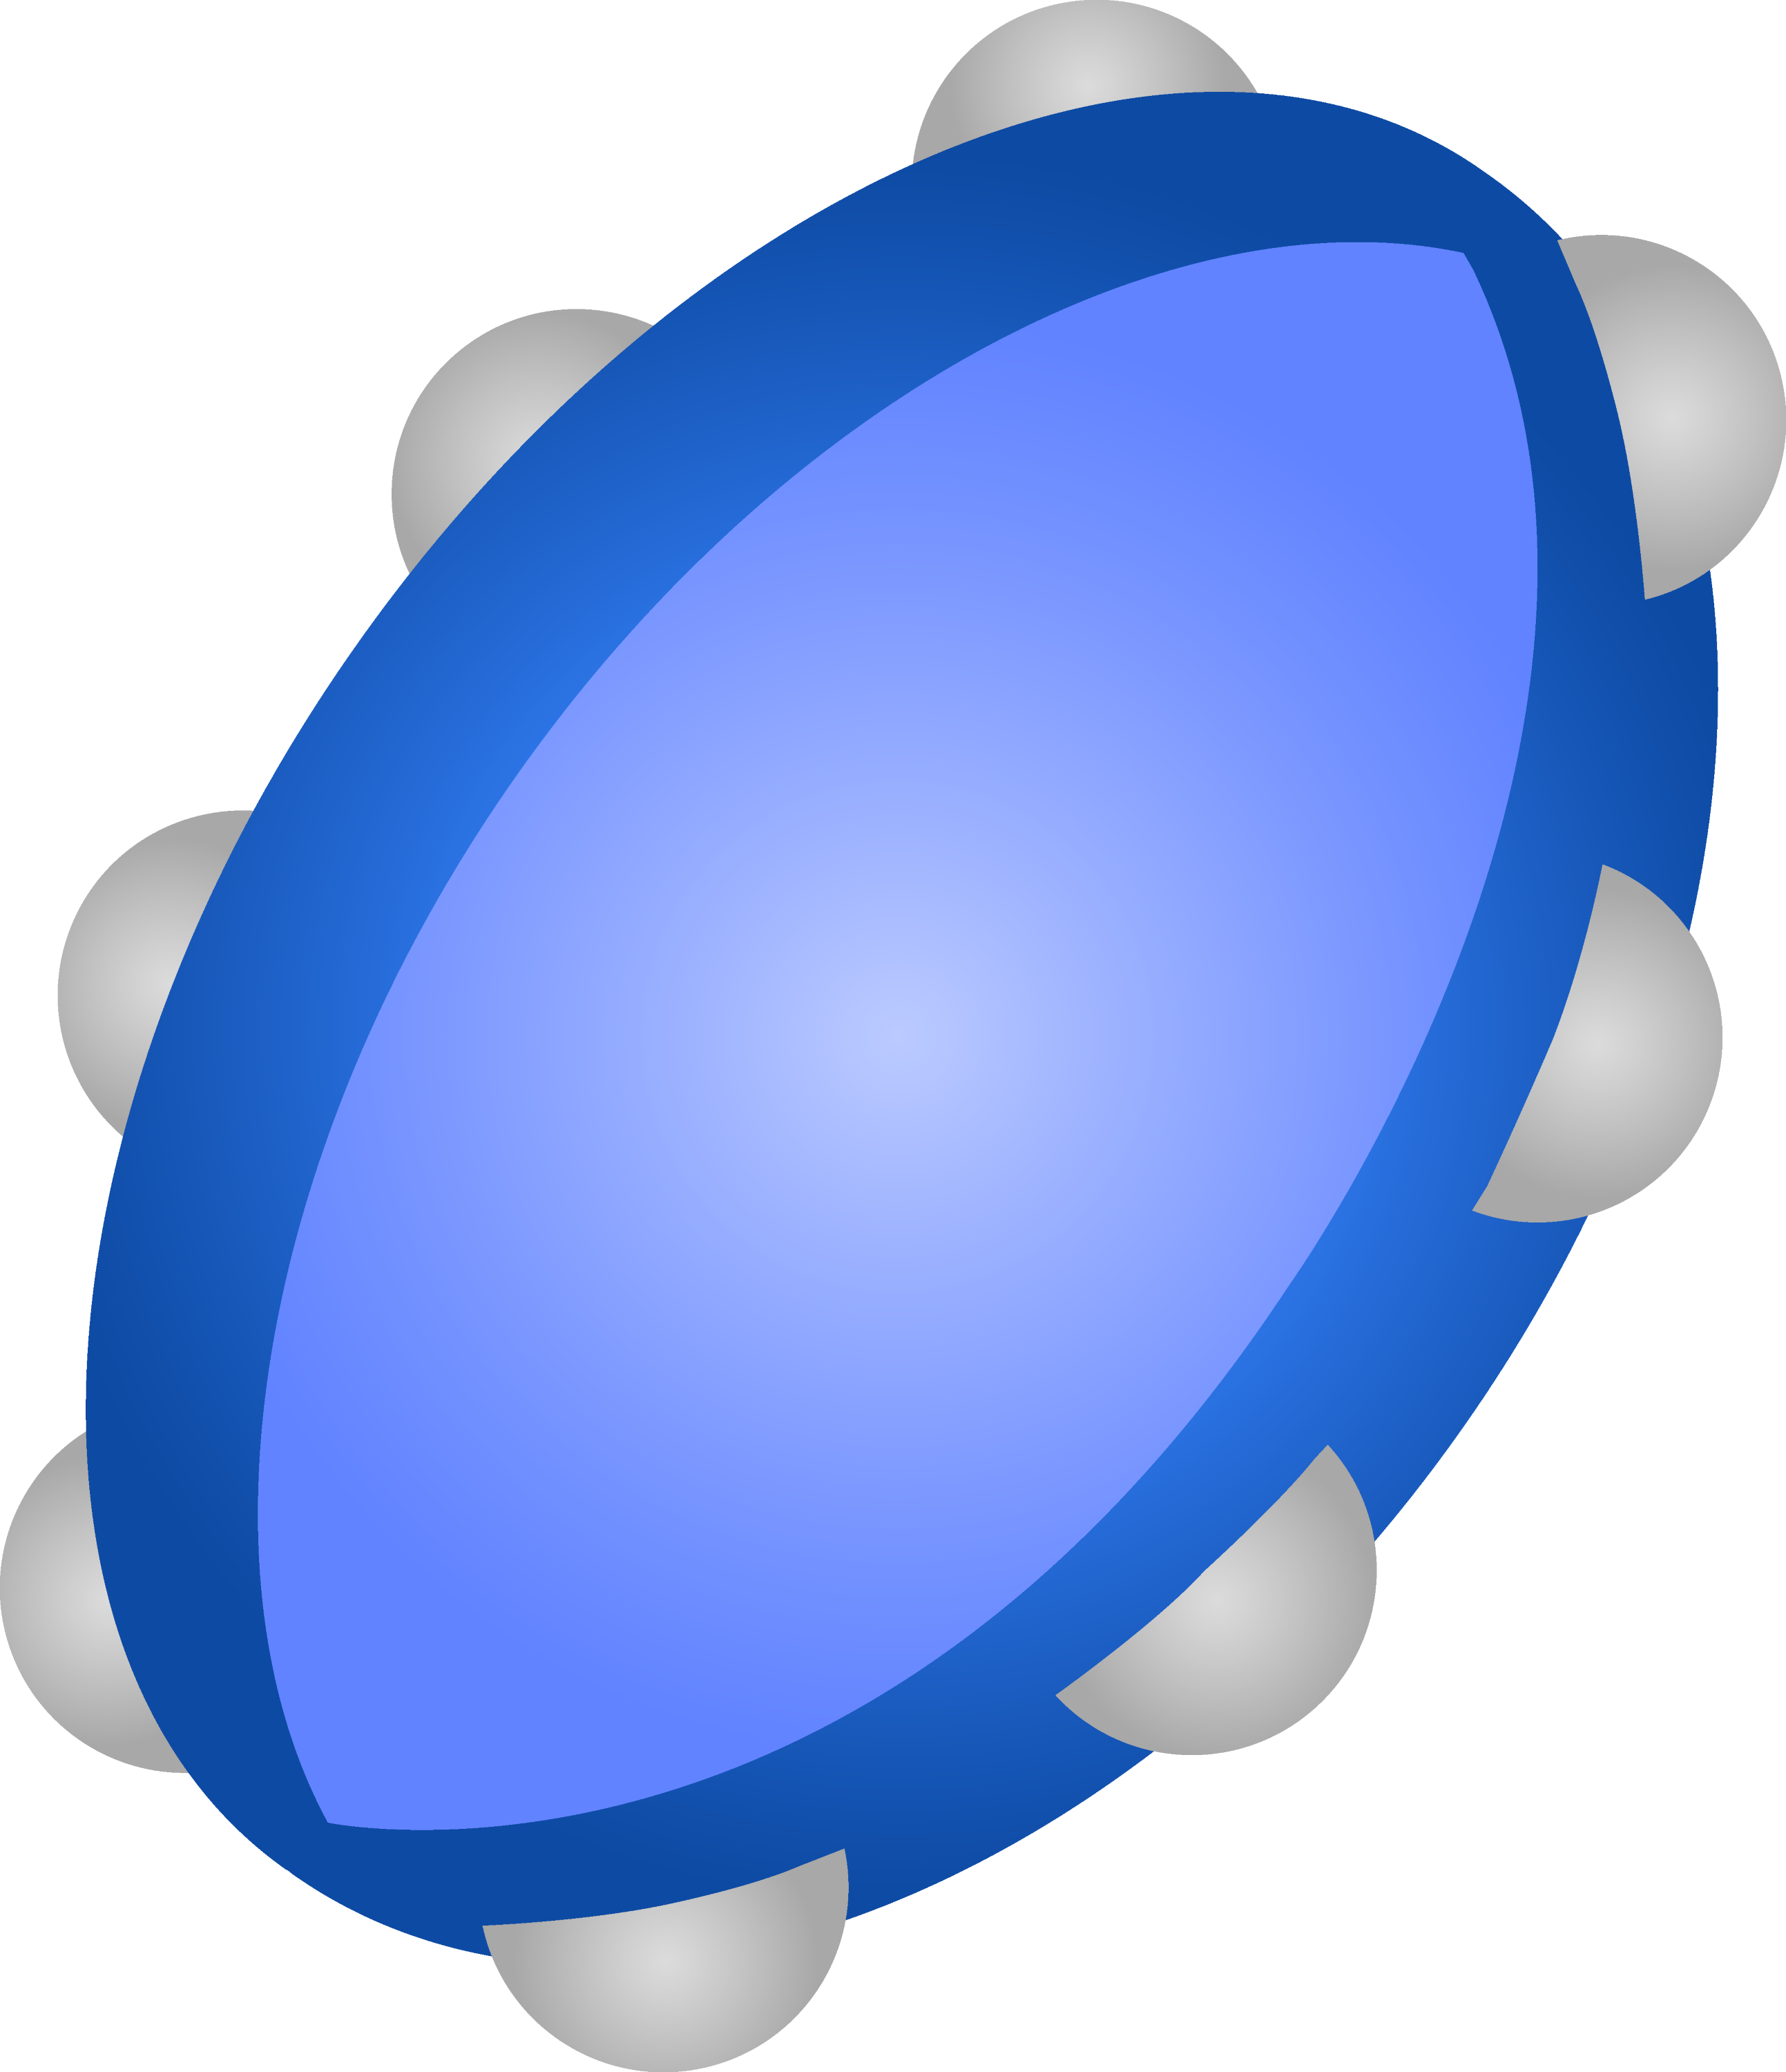 blue objects clipart - photo #21